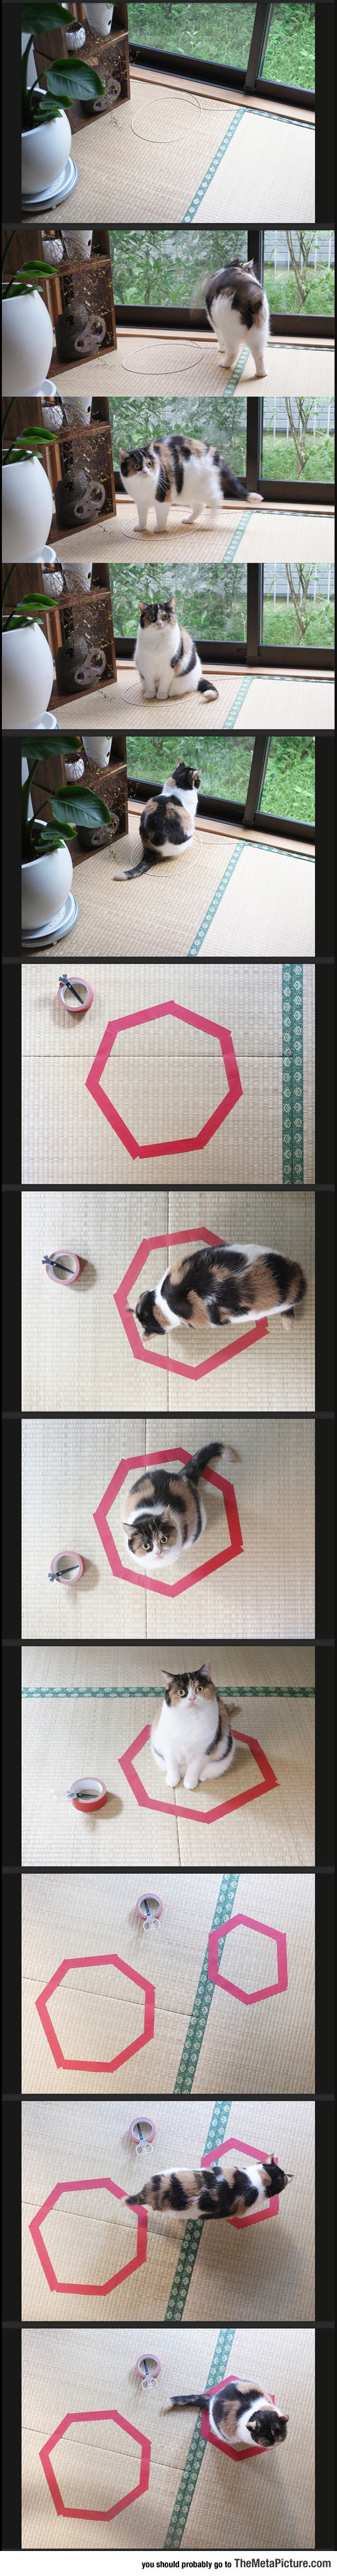 funny-cats-tape-circle-floor